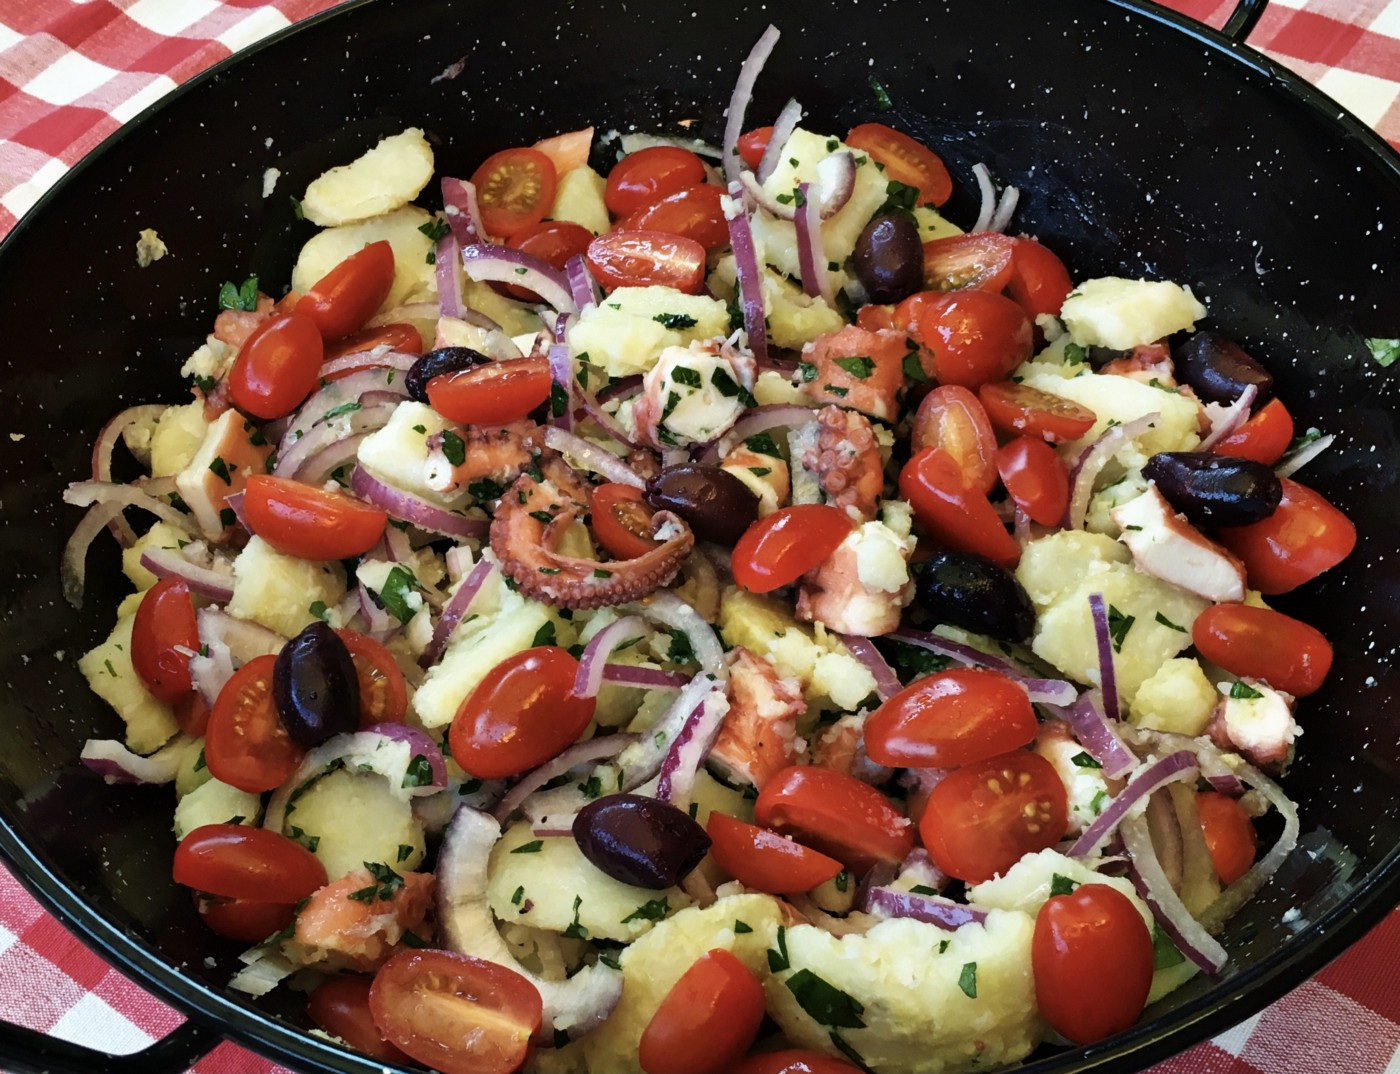 Octopus cut into small pieces and prepared with potatoes, tomatoes, and cucumbers.